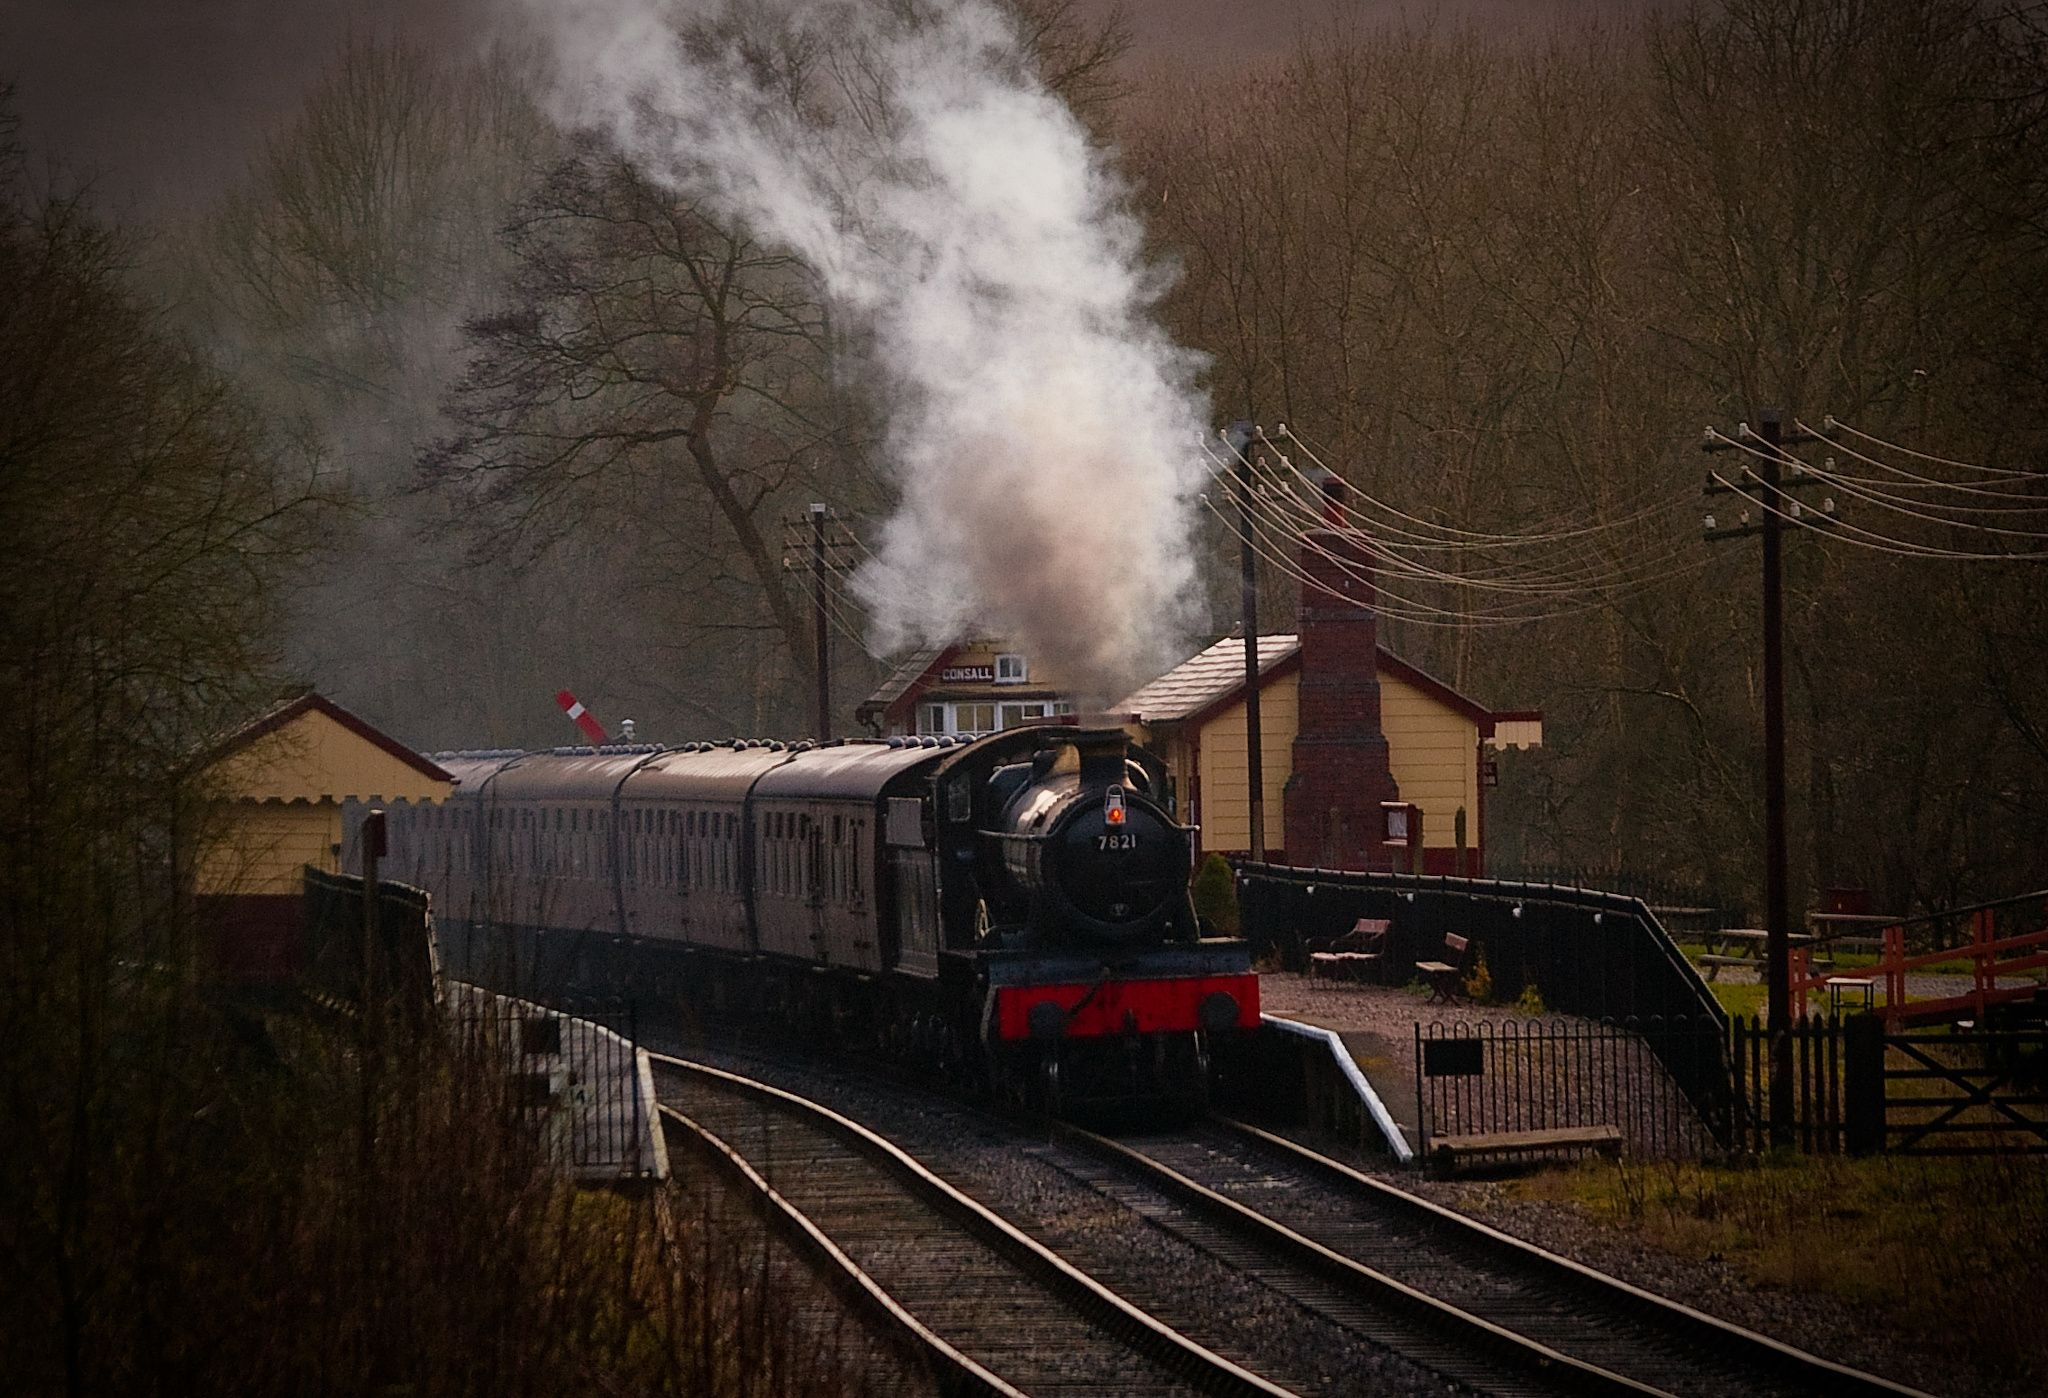 Last Departure from Consall - Late Afternoon shot of Steam Engine 7621 leaving Consall Station in the Staffordshire Moorlands.